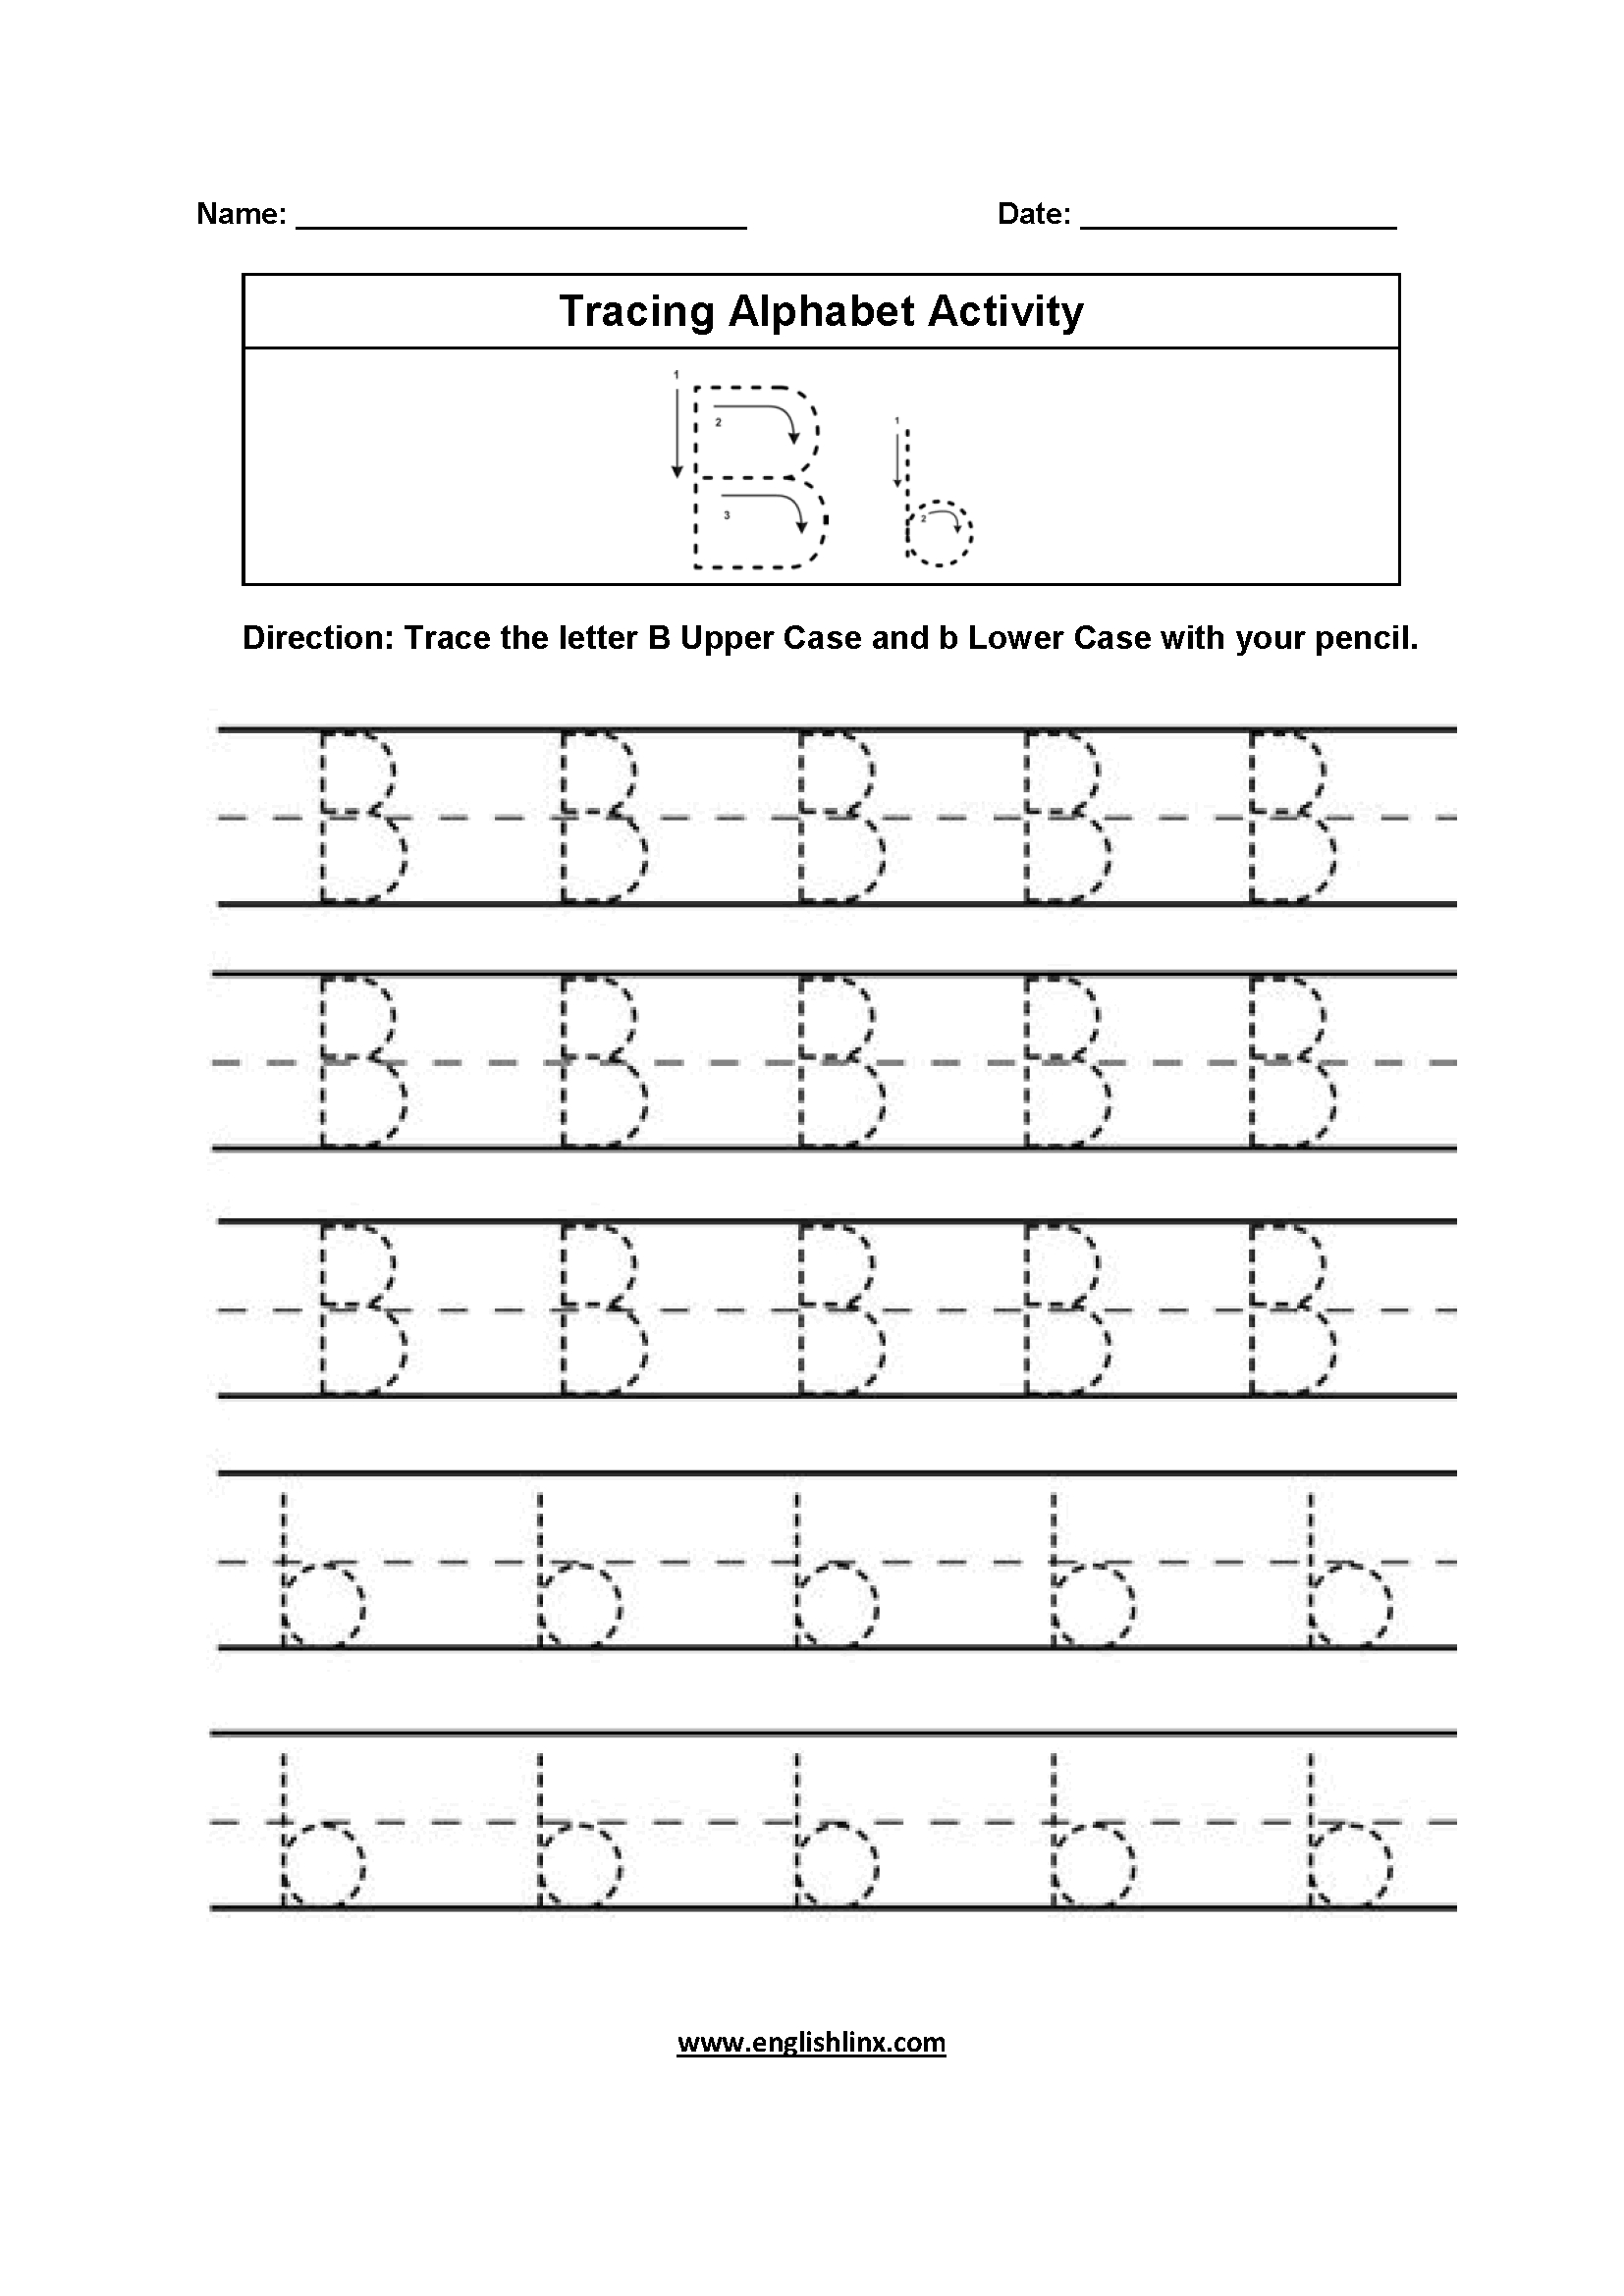 Alphabet Worksheets | Tracing Alphabet Worksheets within Alphabet Worksheets A-Z Pdf